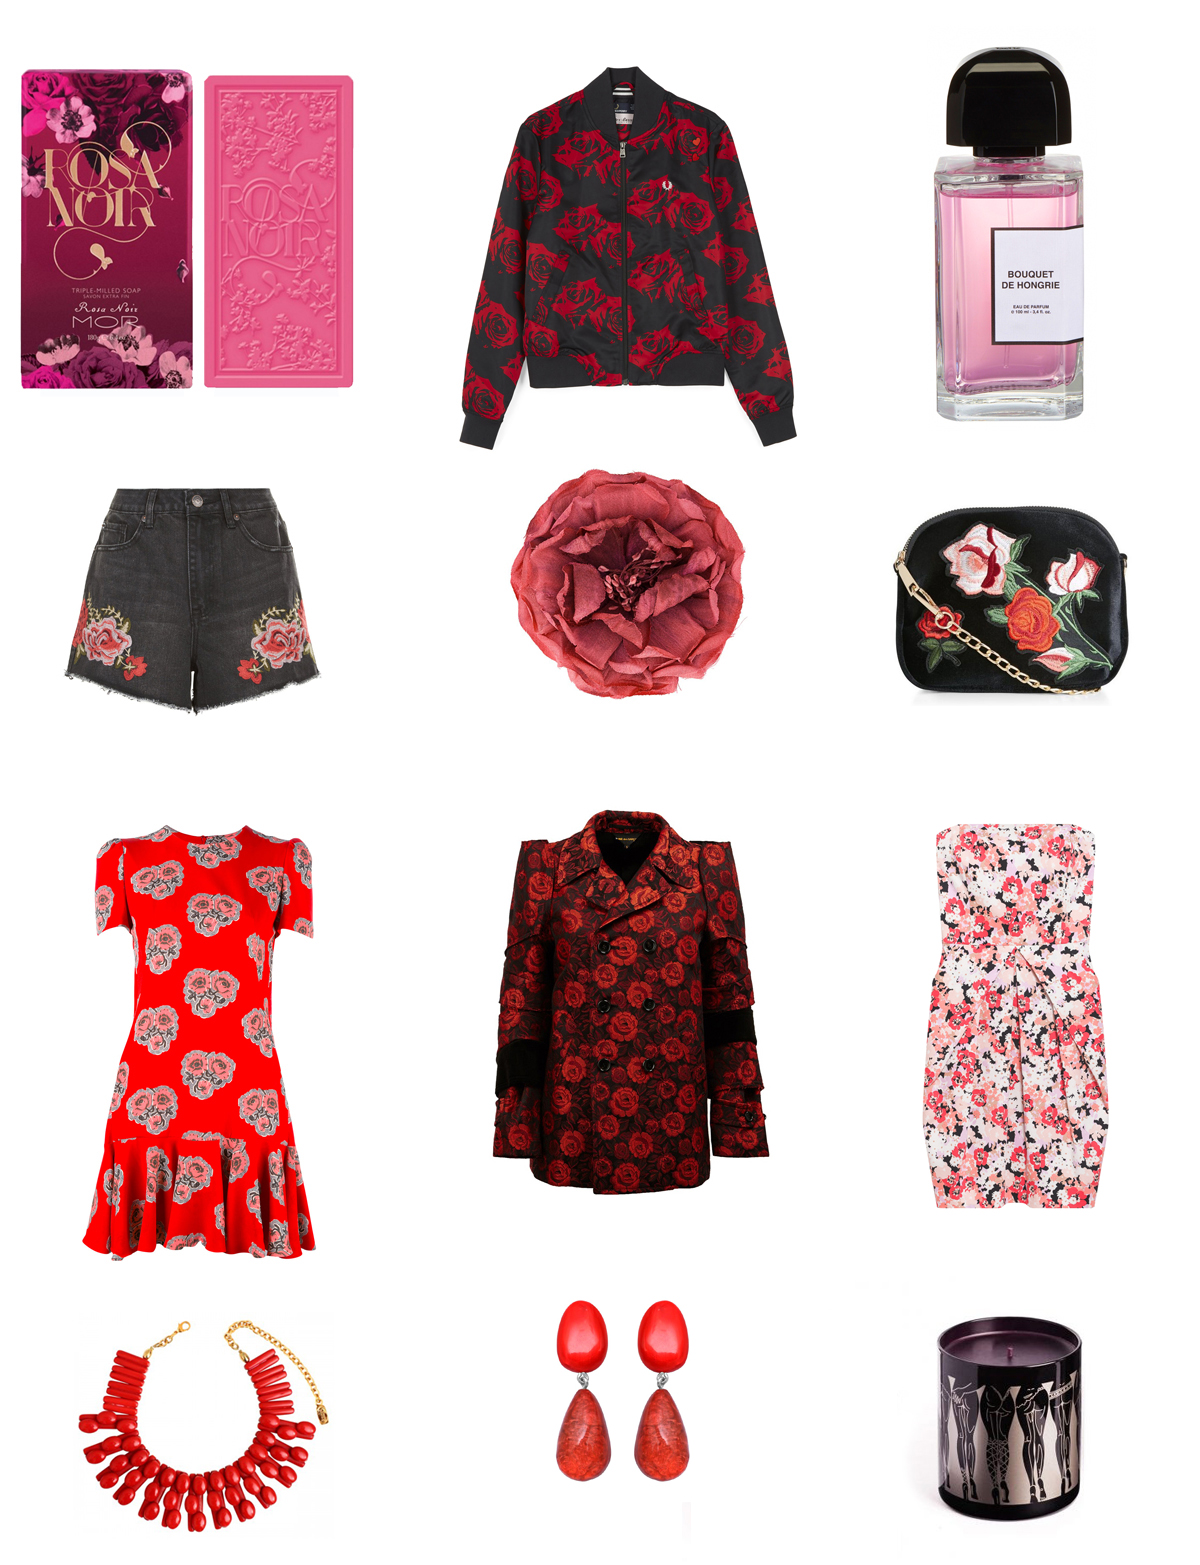 roses-passion-shopping-selection